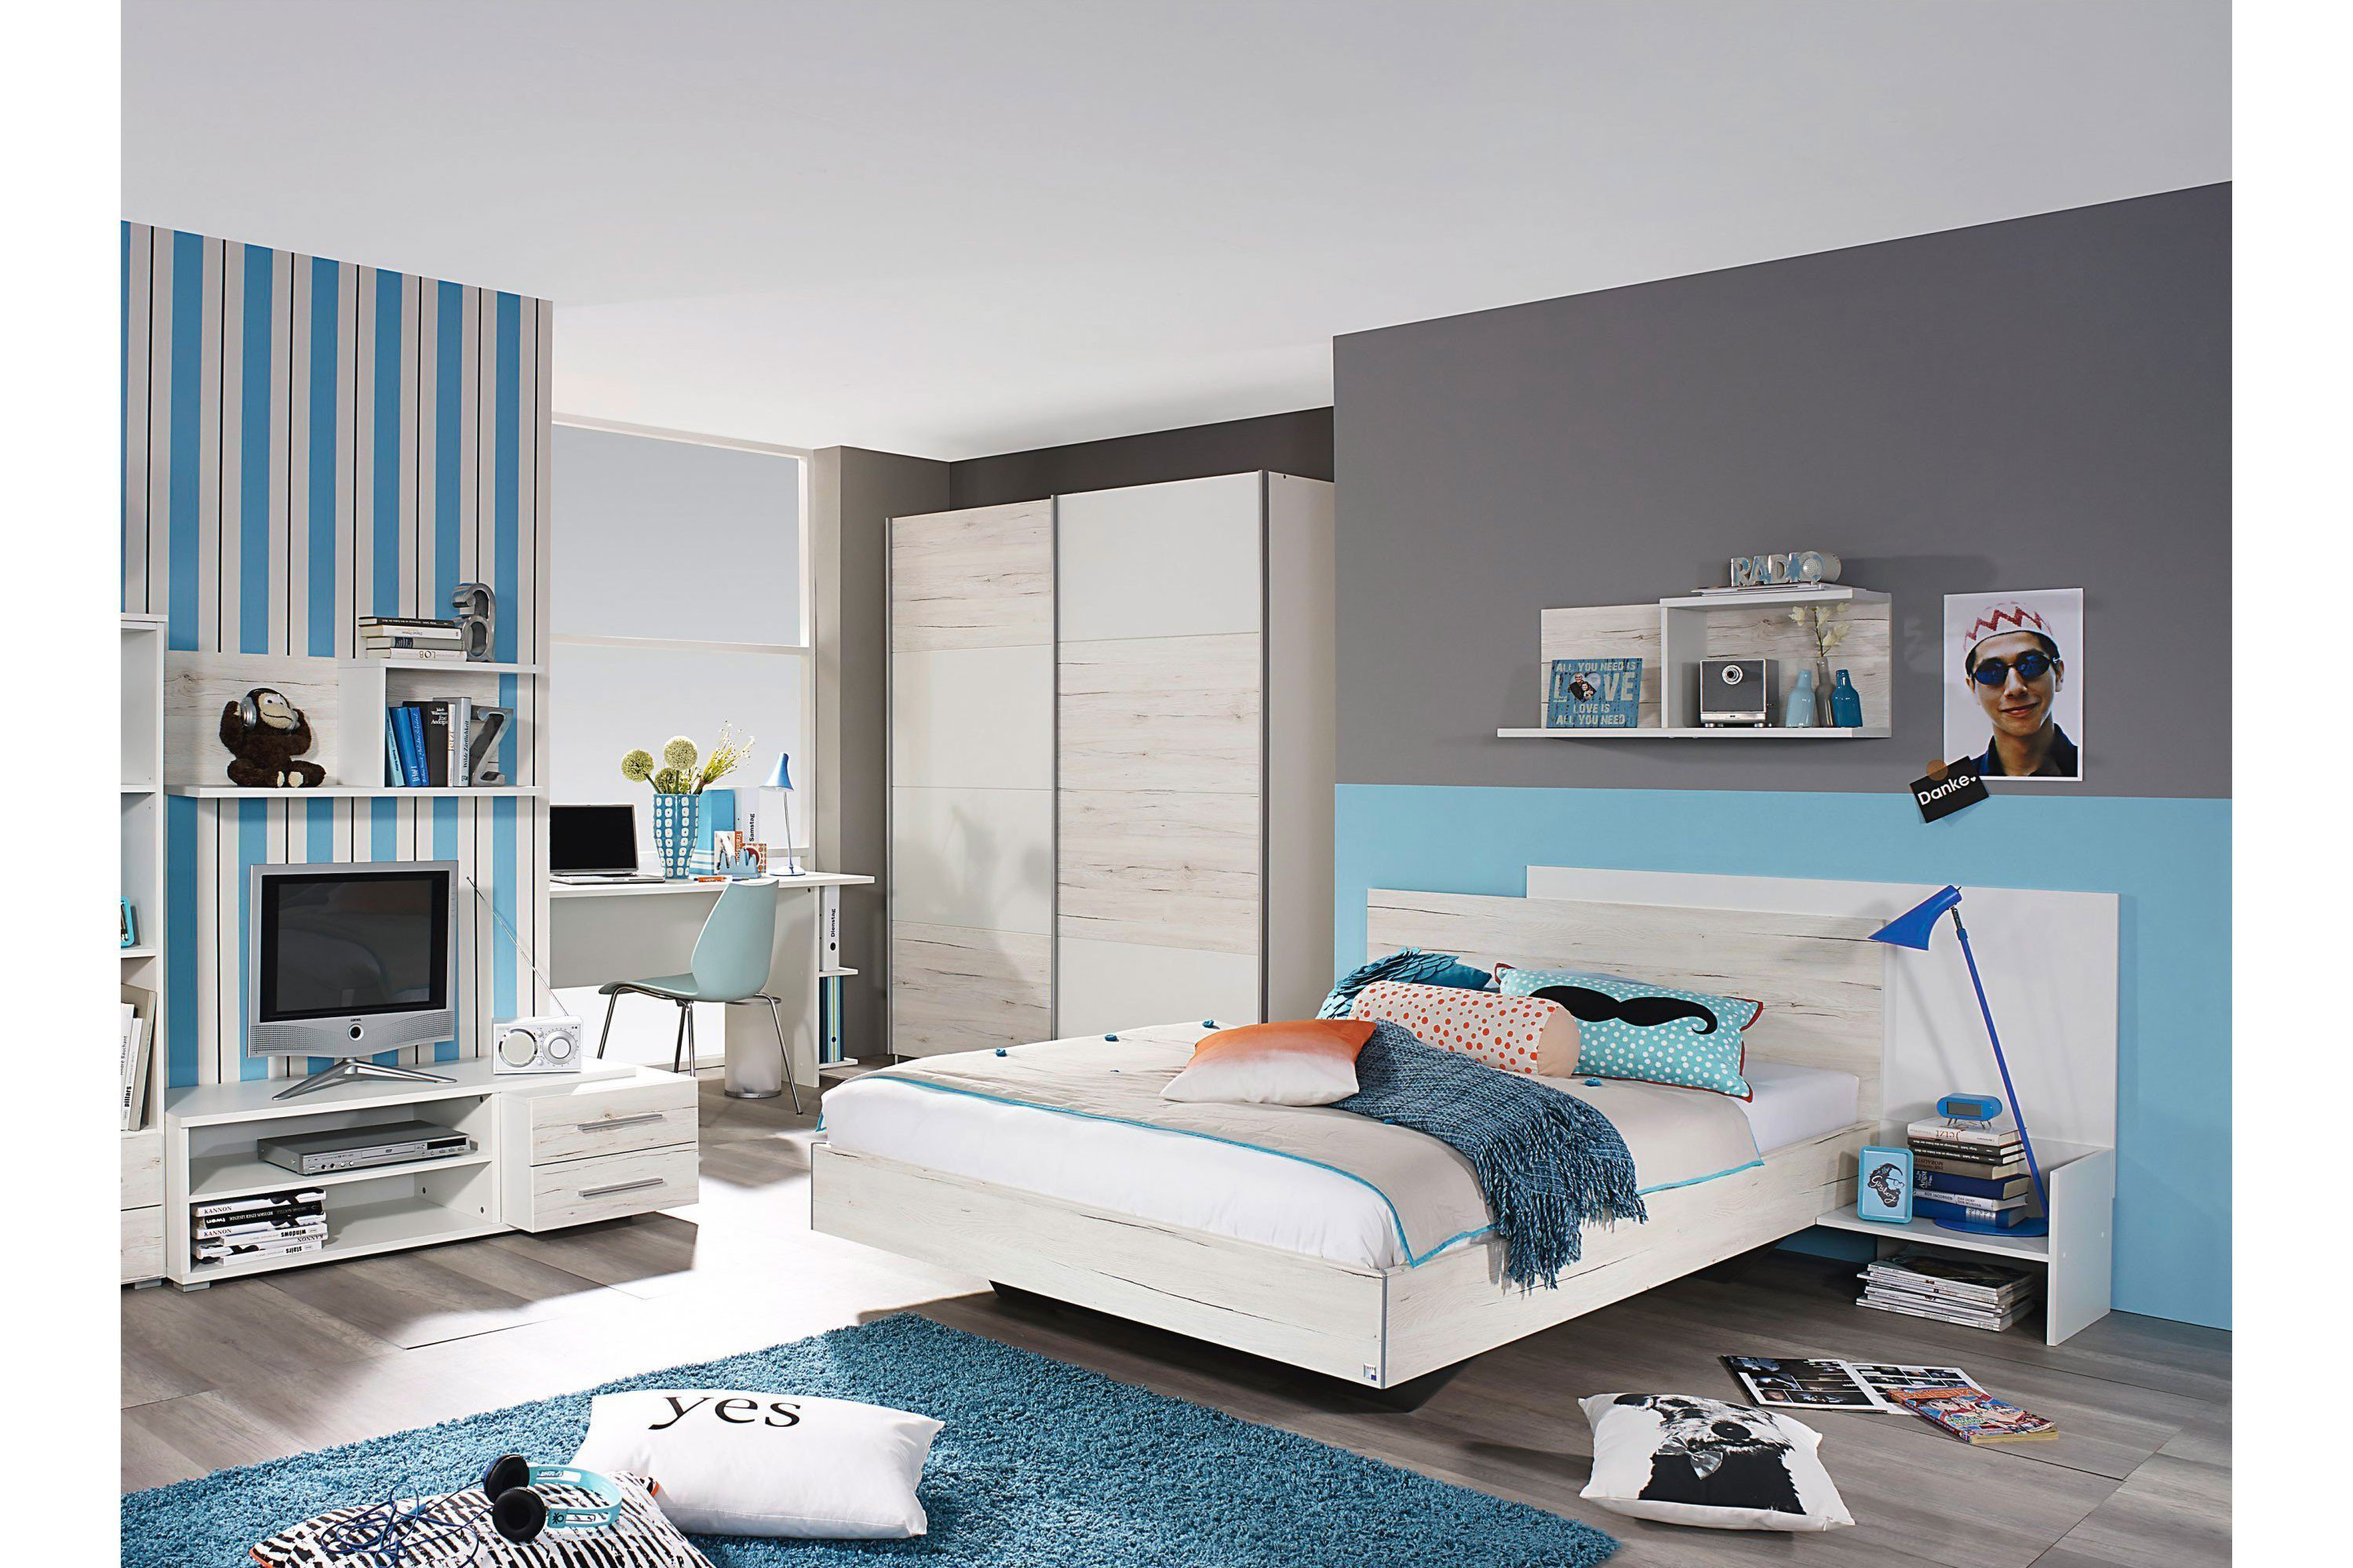 rauch broome jugendzimmer wei eiche m bel letz ihr. Black Bedroom Furniture Sets. Home Design Ideas